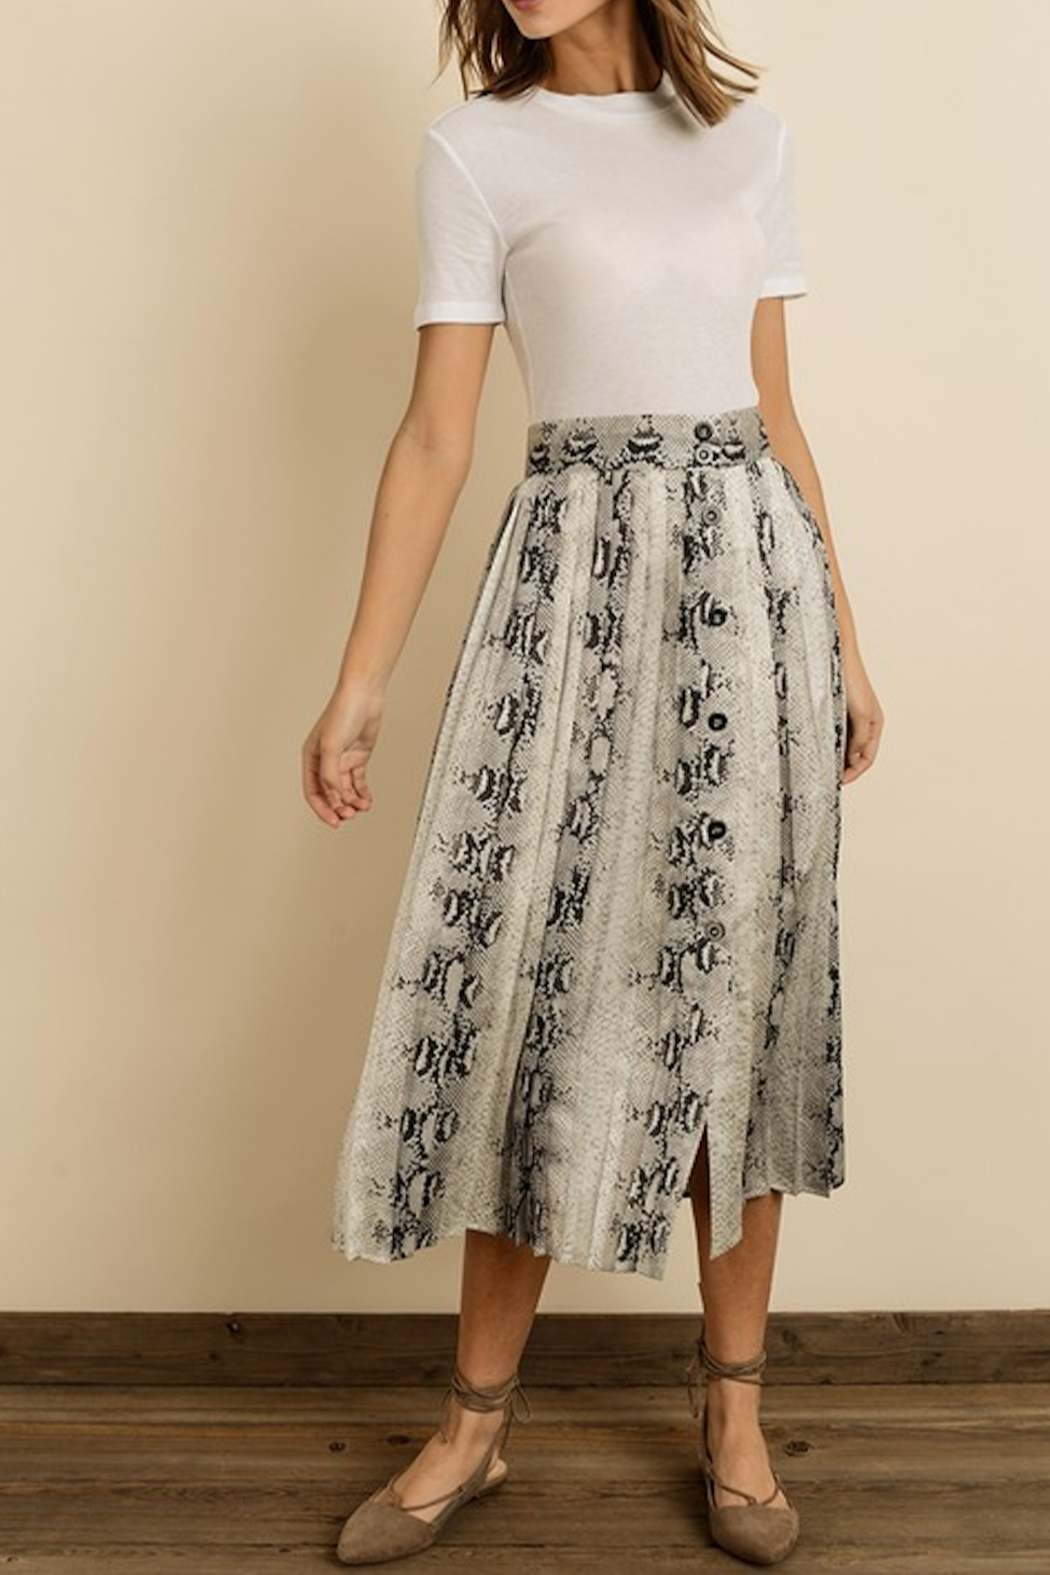 dress forum Snakeskin Pleated Mini Skirt - Main Image